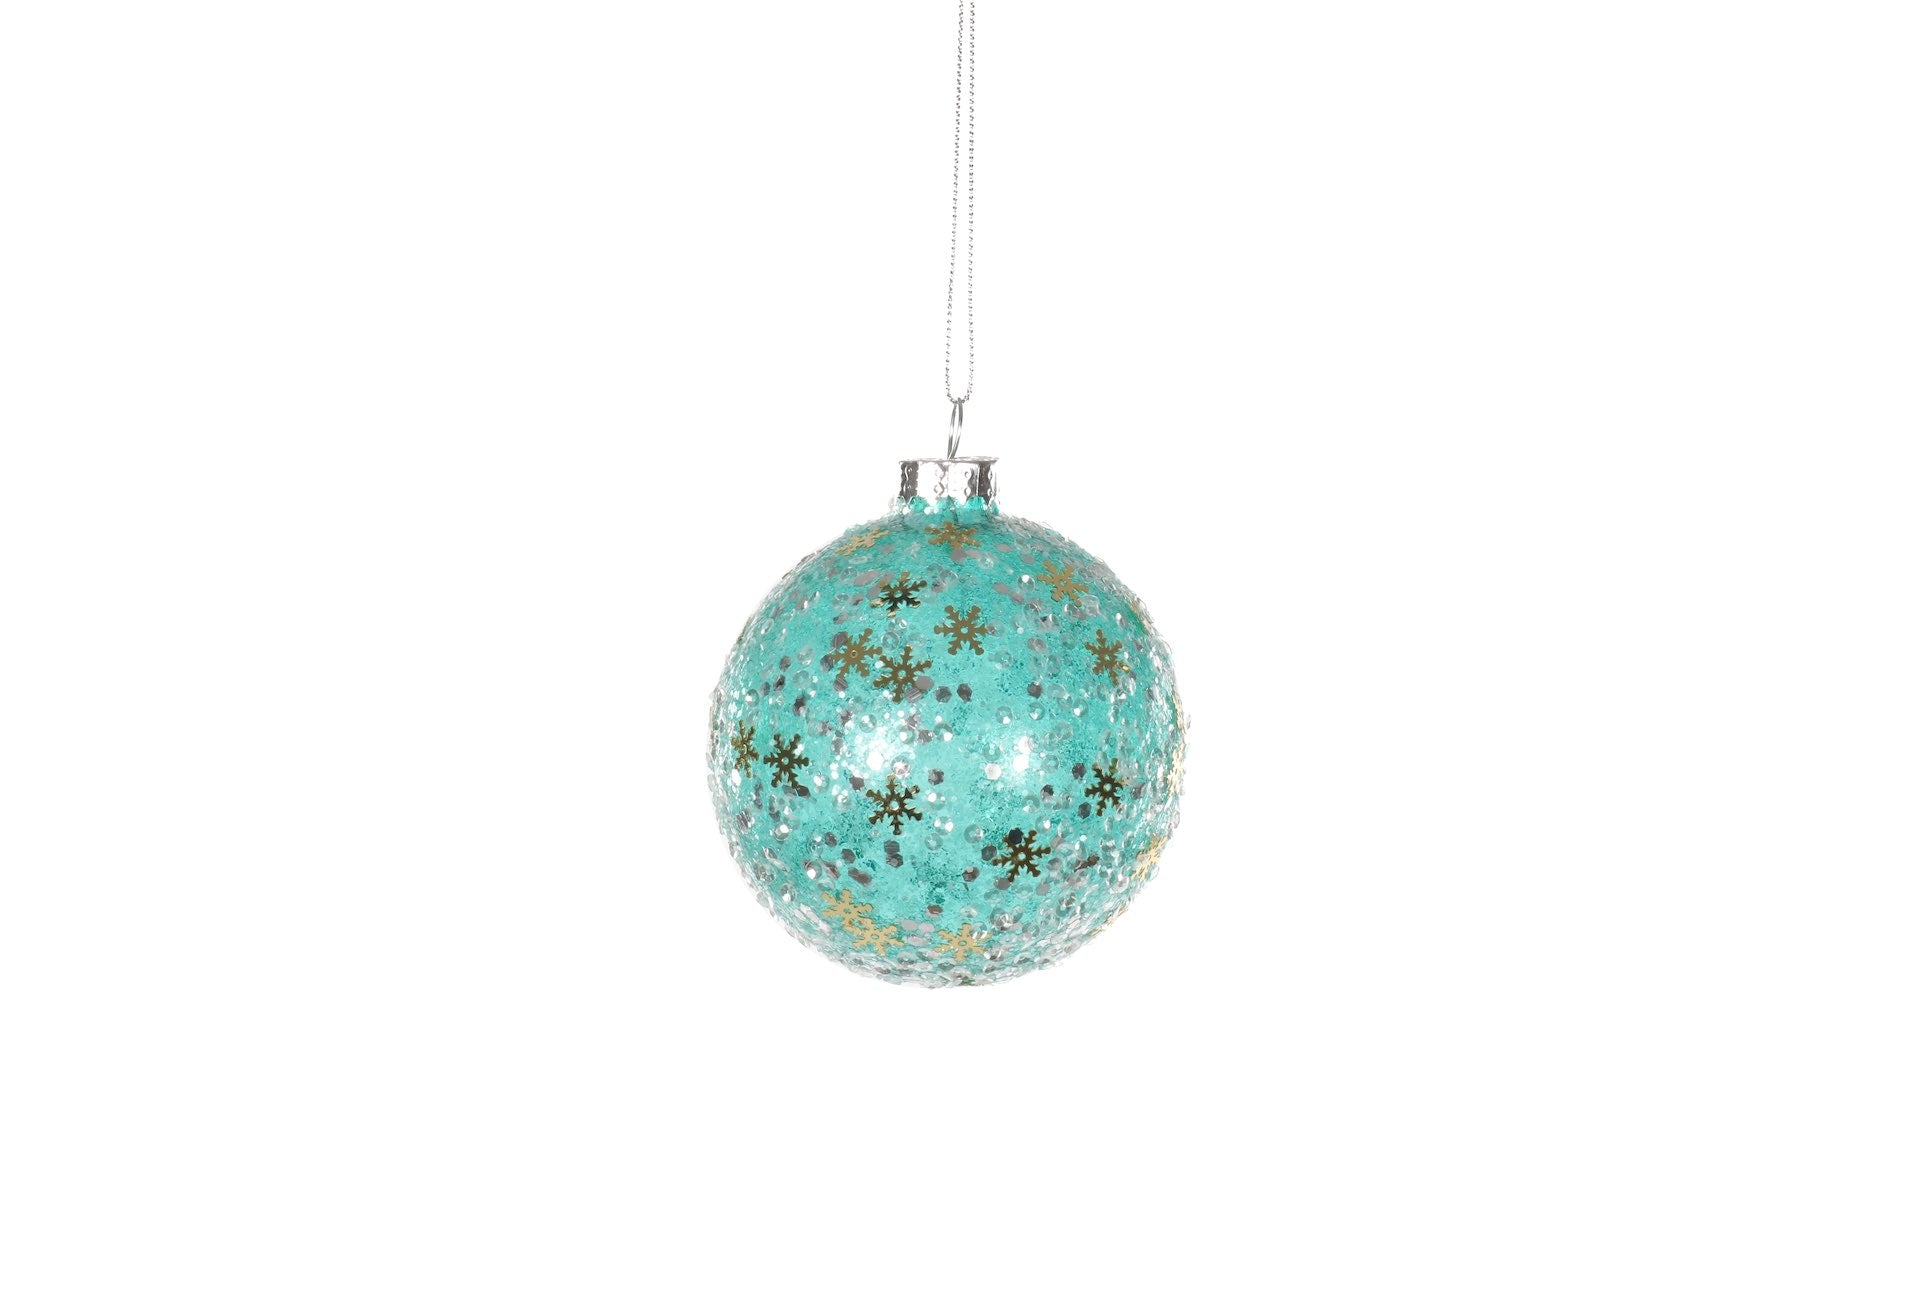 Turquoise Bauble with Snowflakes